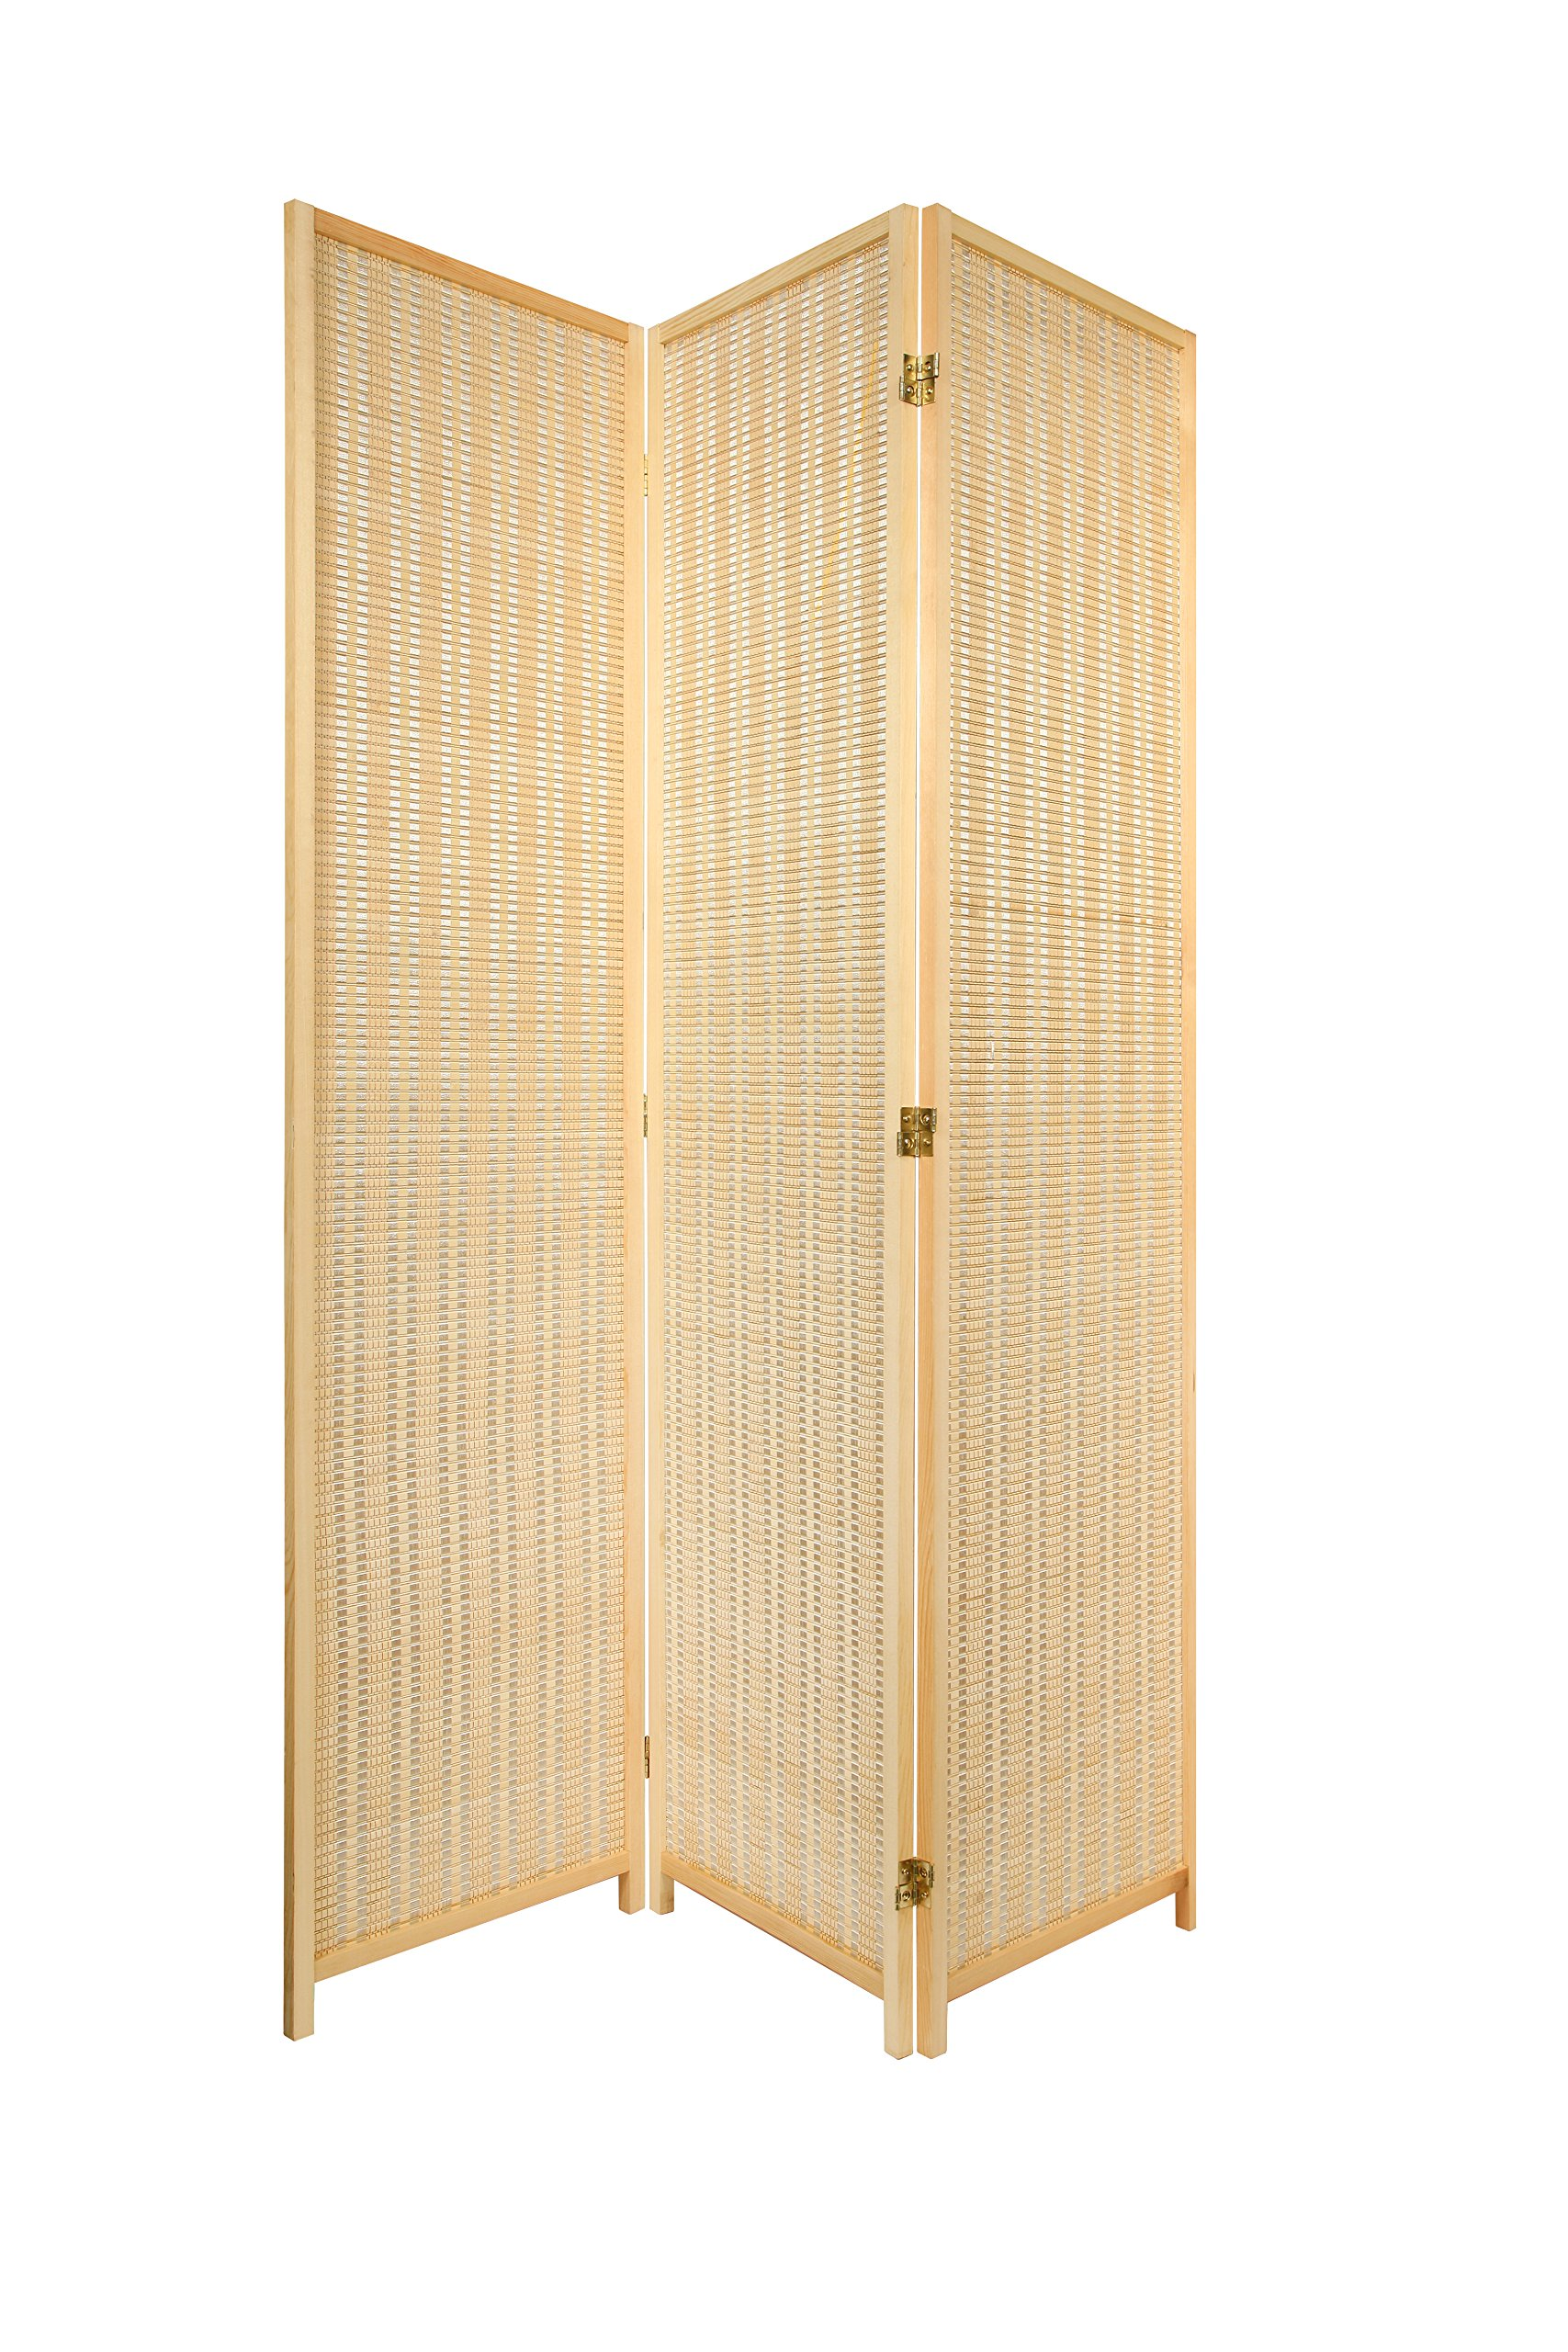 3 Panel Natural Color Wood and Bamboo Weave Room Divider Folding Screen 2-Way Double hinged, By Legacy Decor